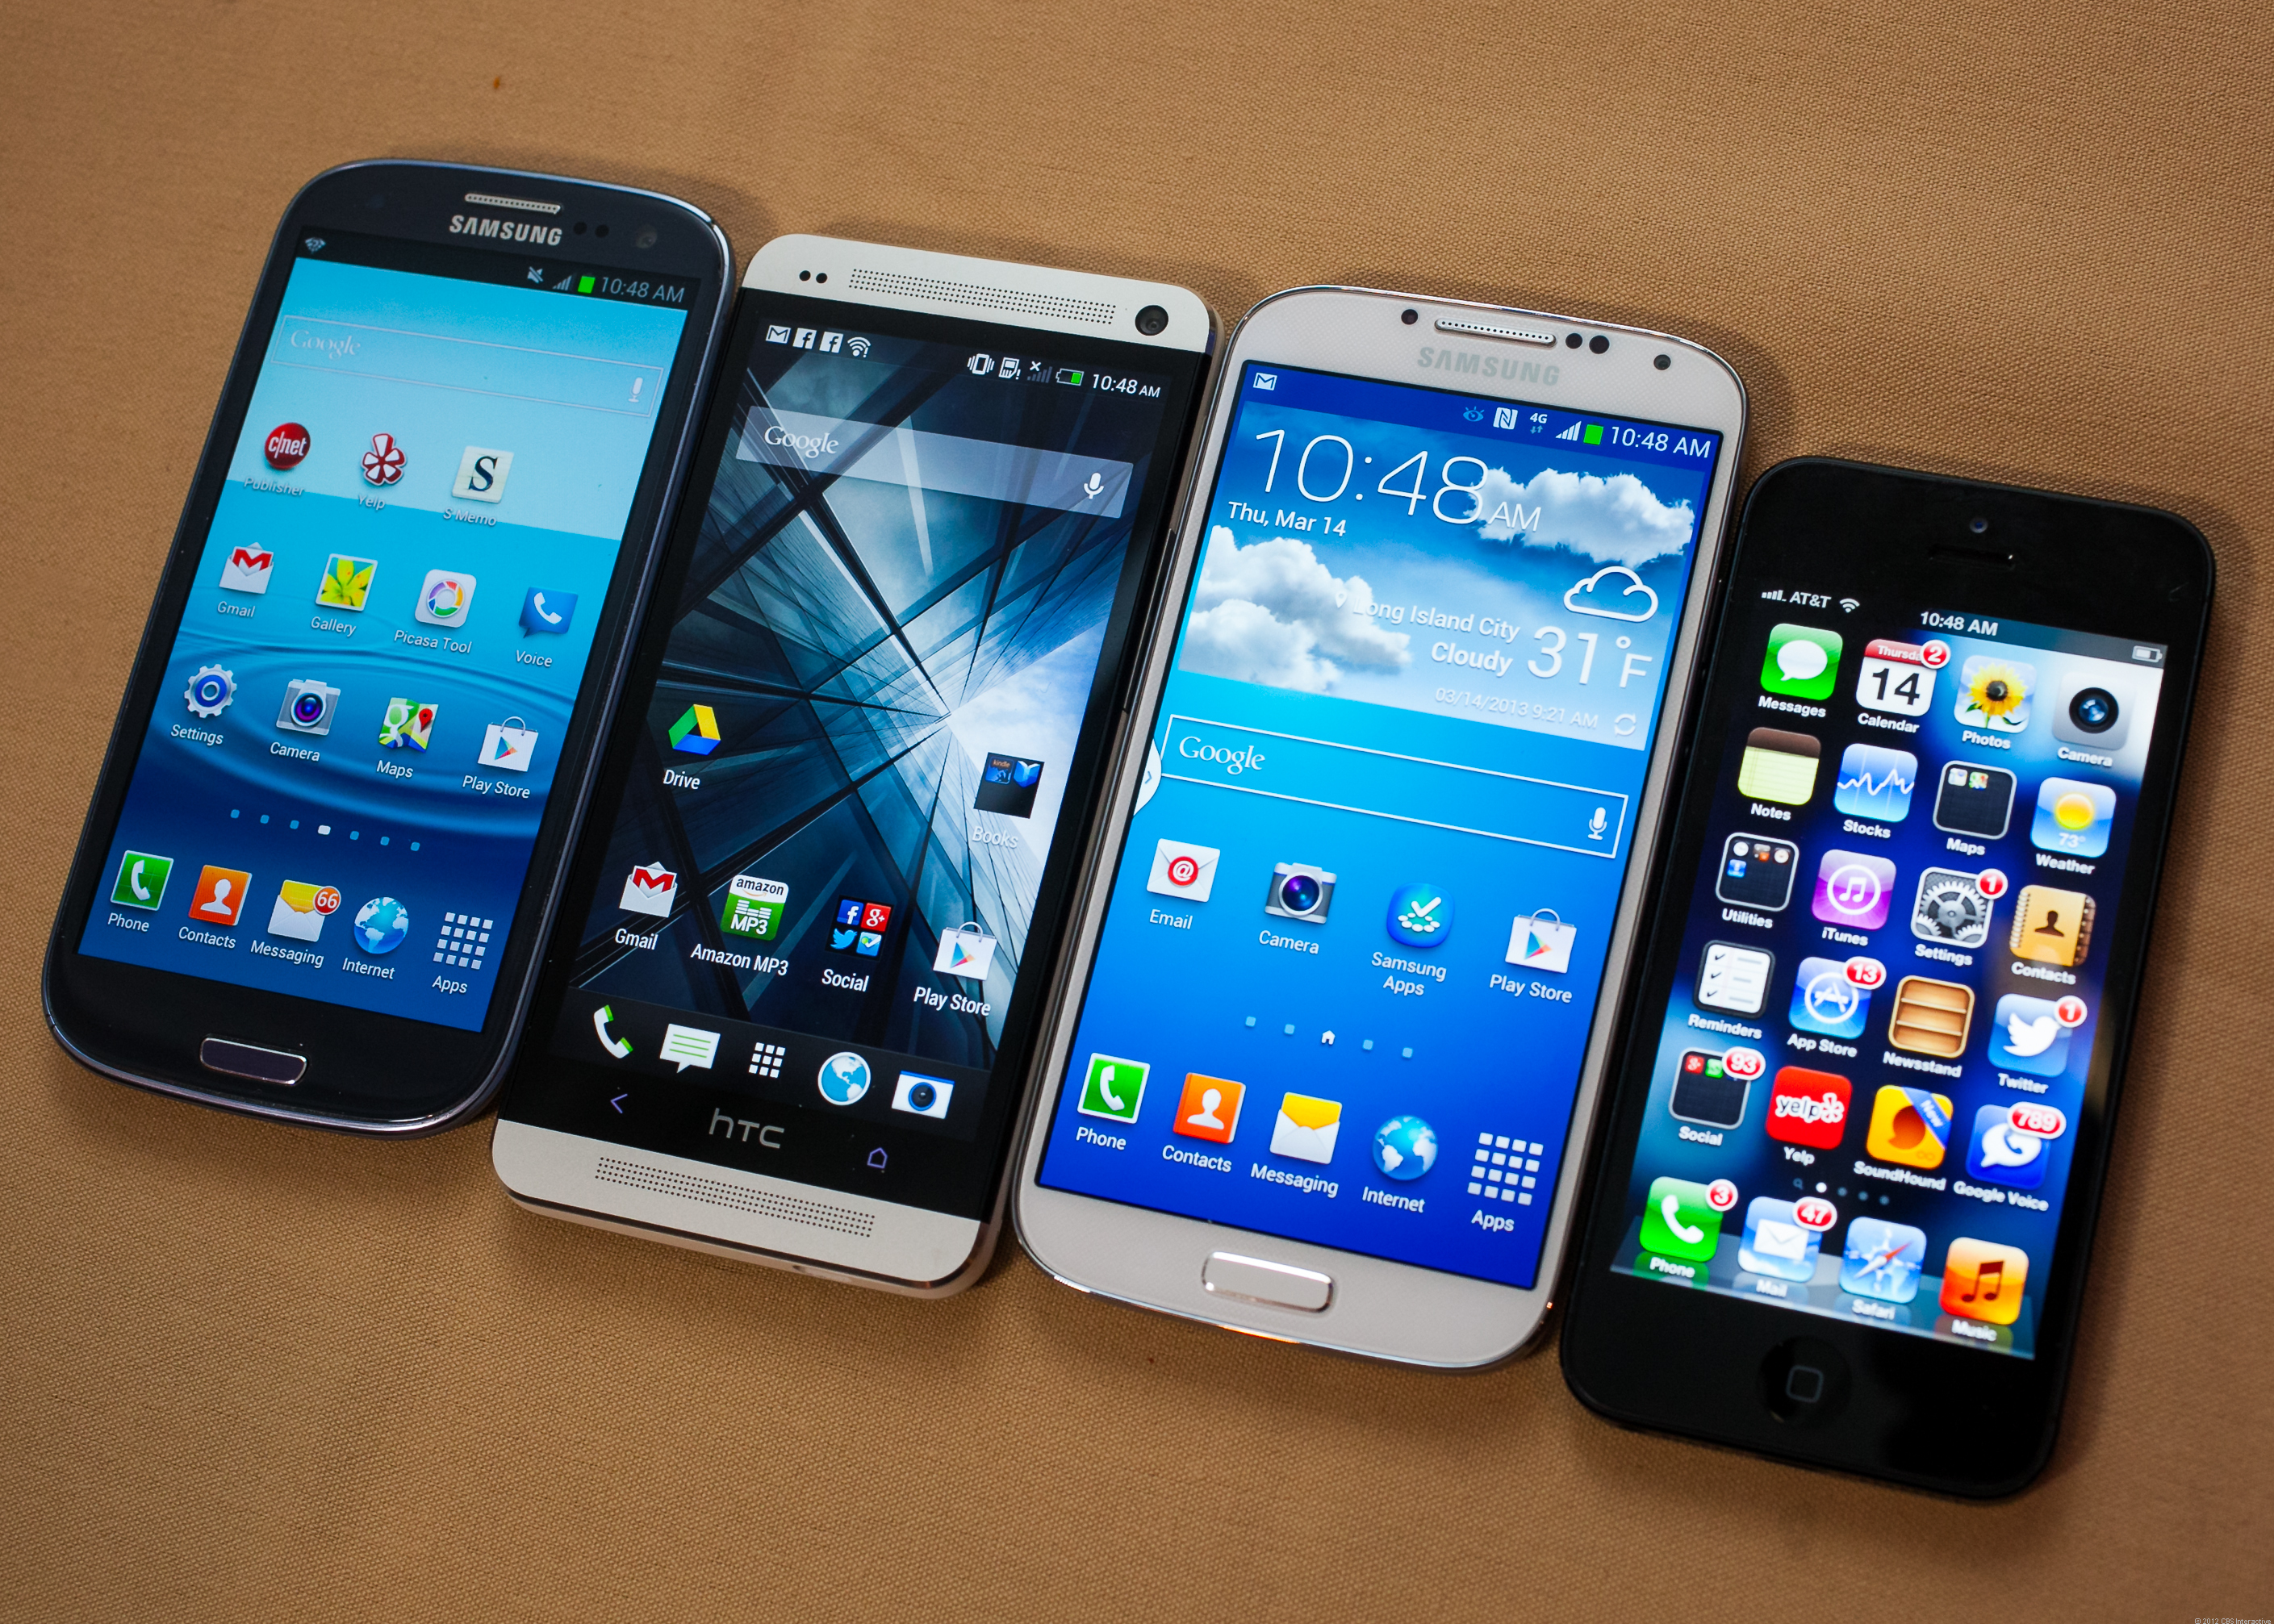 Samsung's latest devices, next to Apple in real life, not on the Twitters.